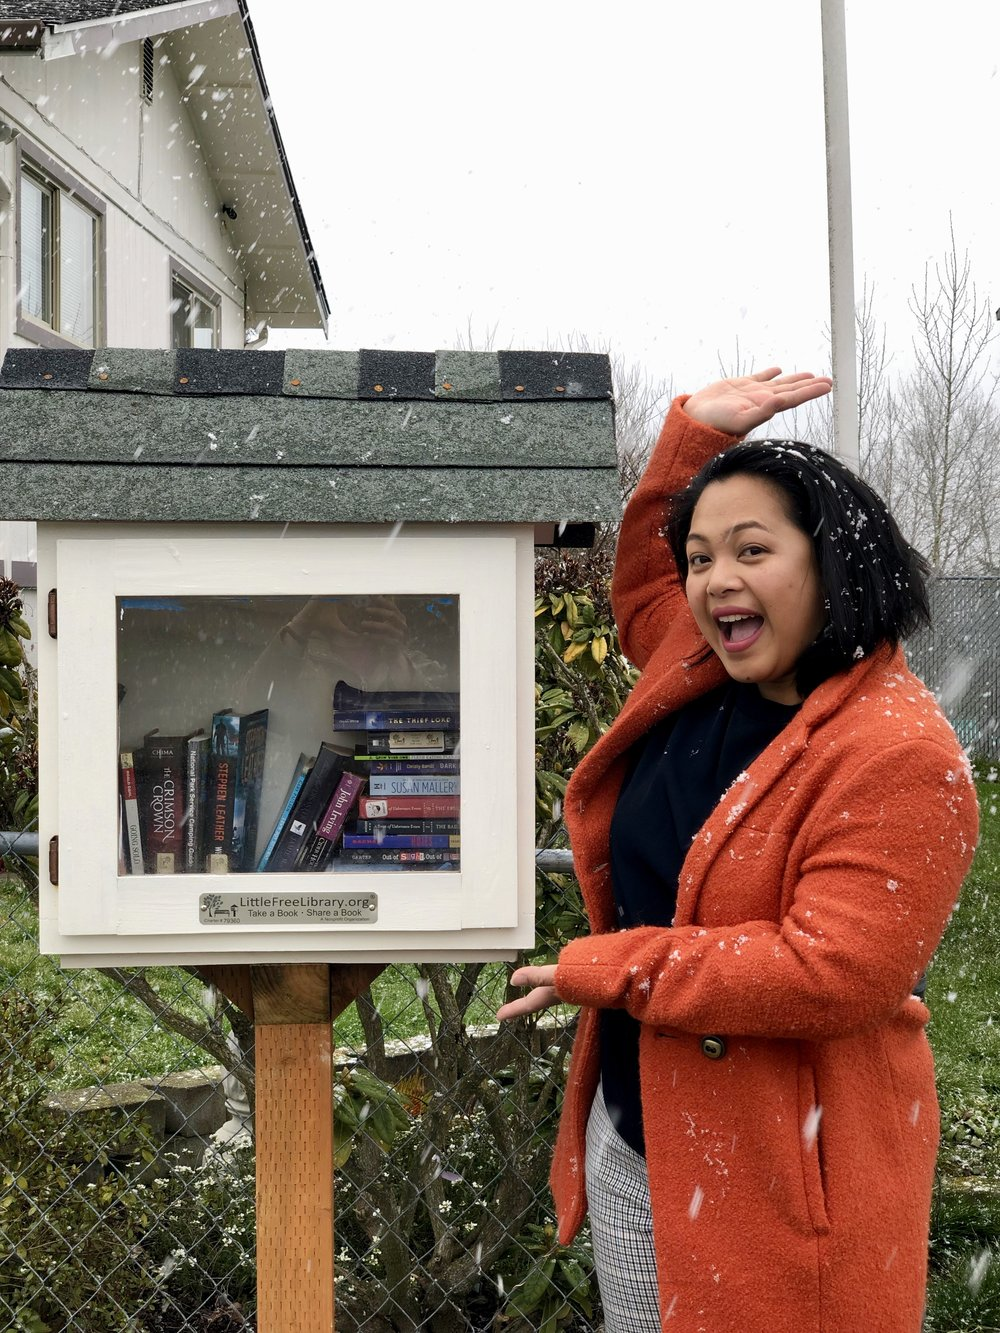 By the time you finish this article we hope you're as excited as Melo Hogan about Little Free Libraries!